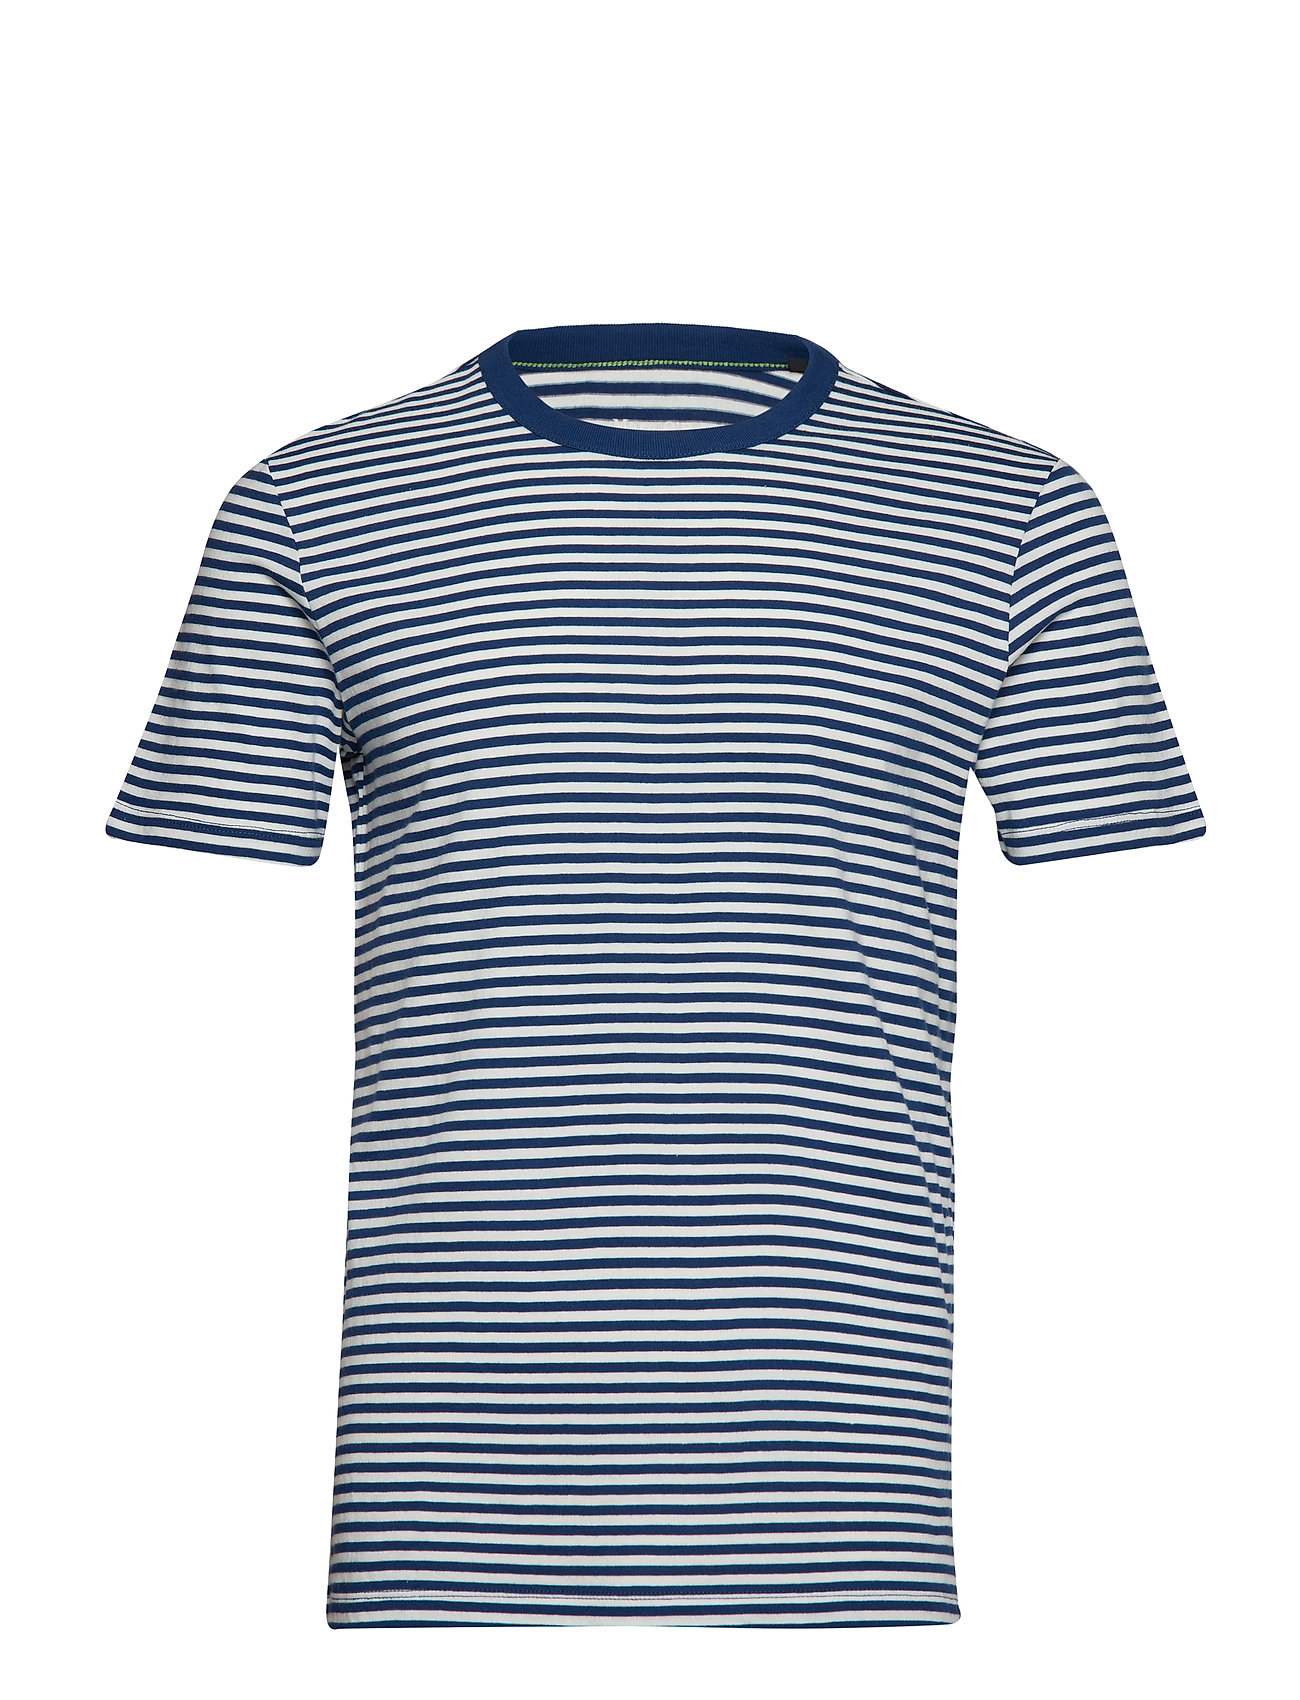 Marc O'Polo T shirt, short sleeve, round neck Ögrönlar